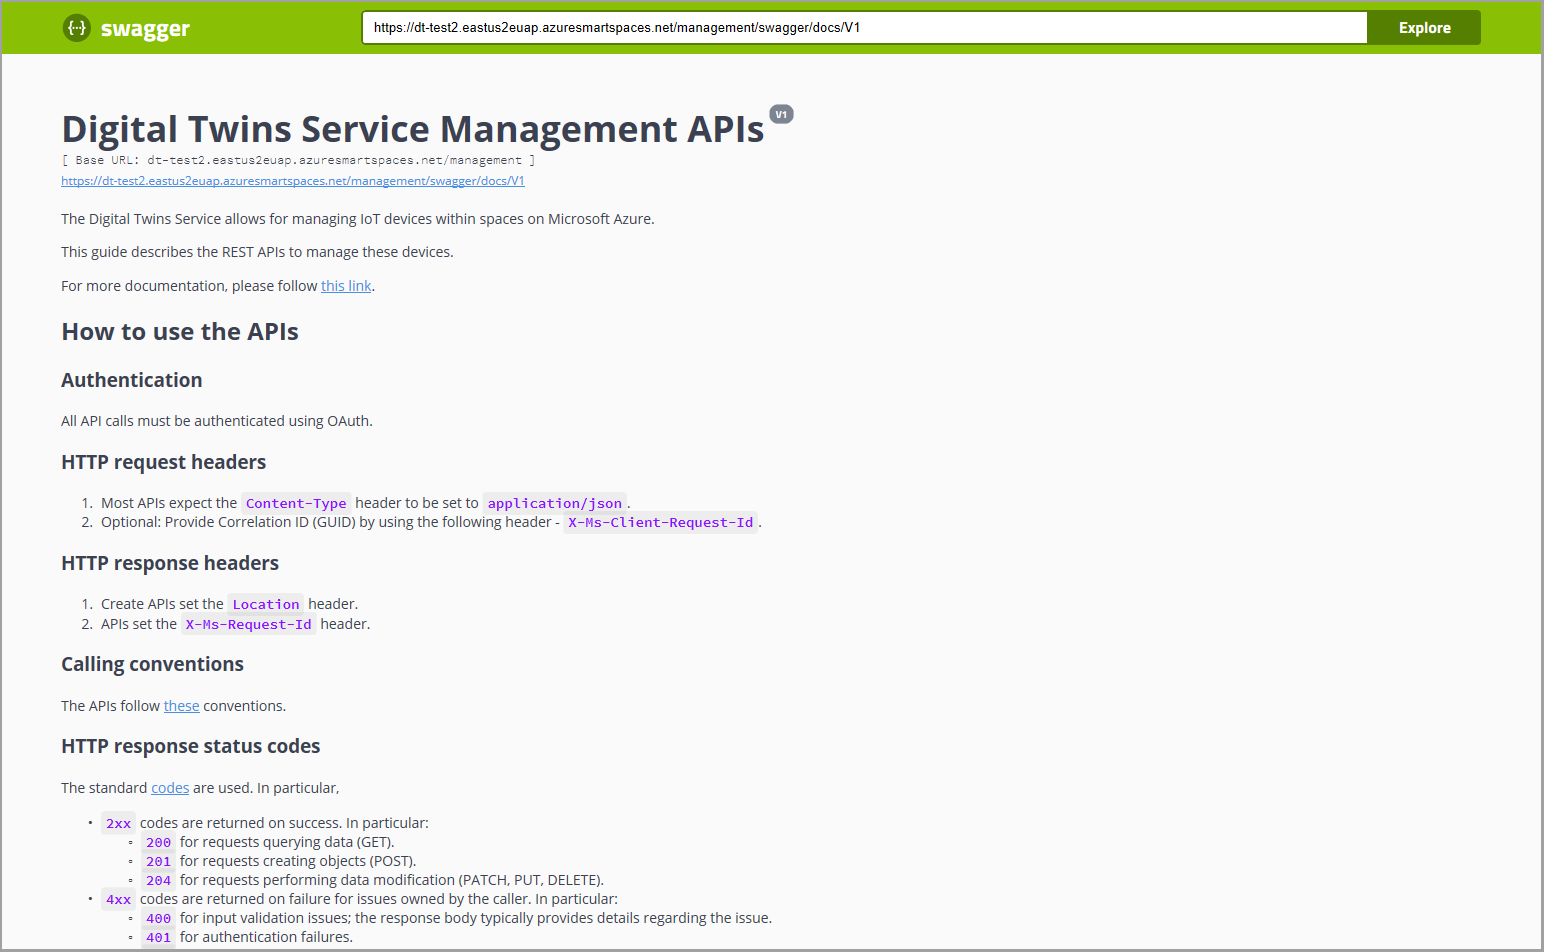 Understand how to use Azure Digital Twins reference Swagger